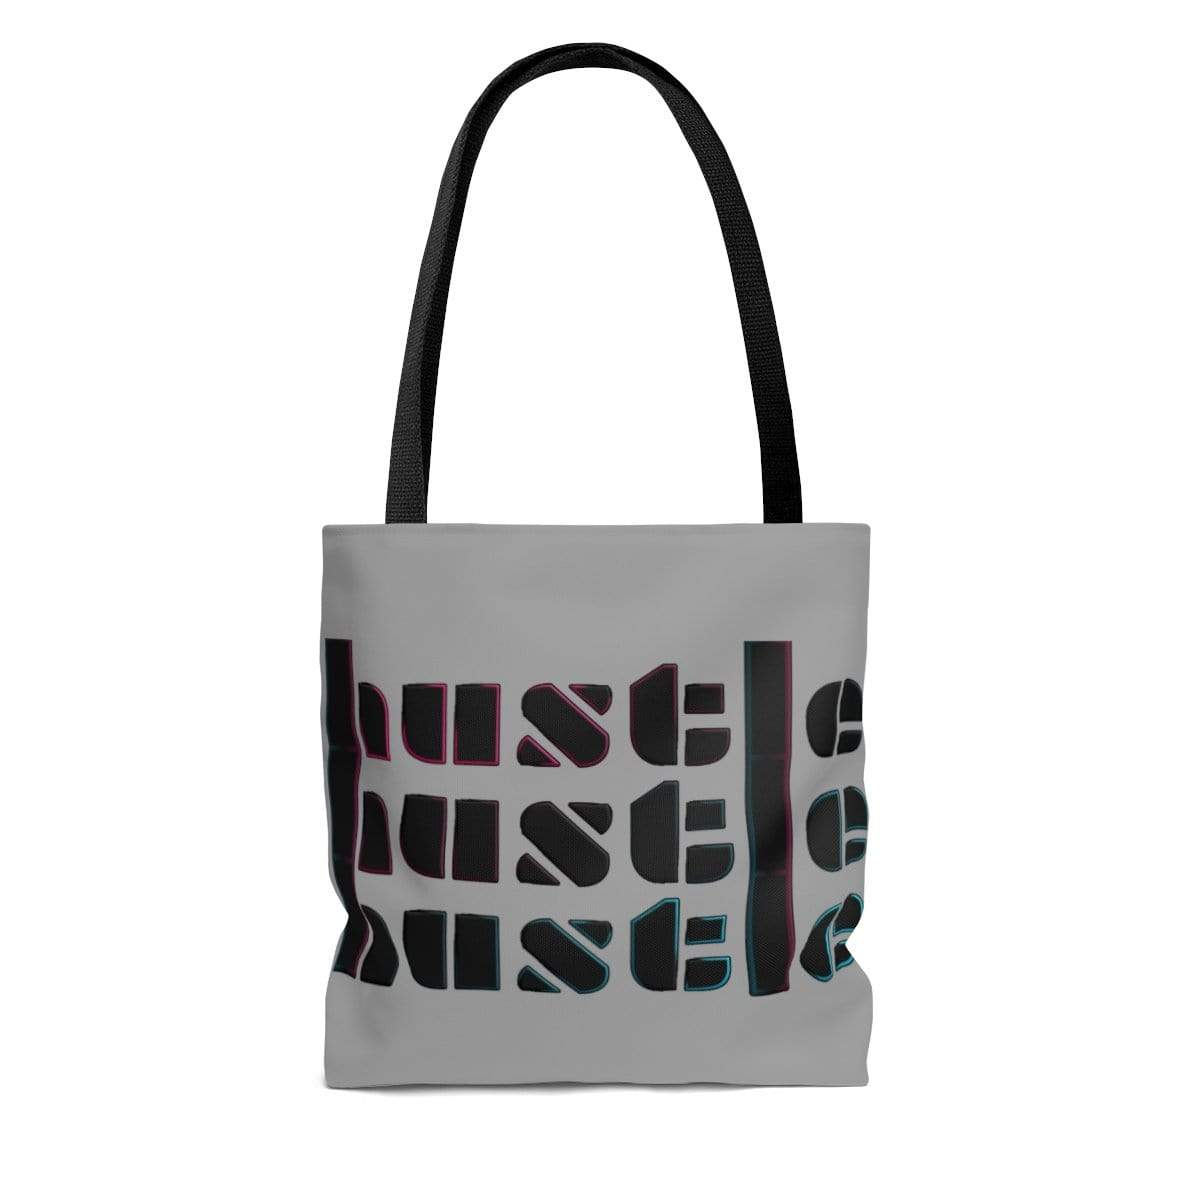 Plumskum Bags 3 Times the Hustle Tote Bag